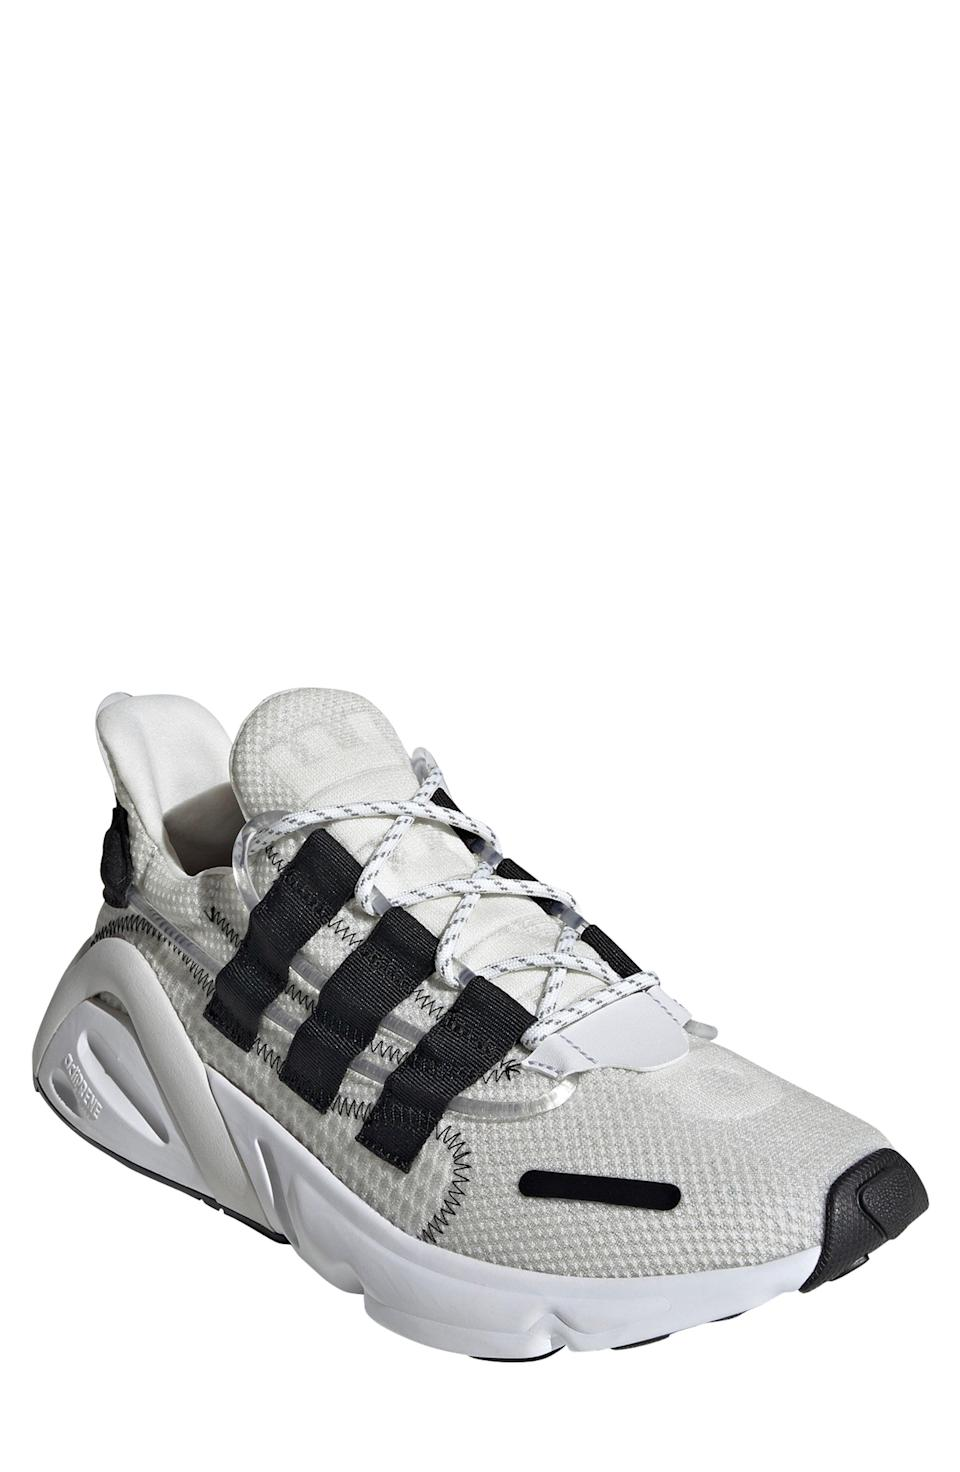 """<p><strong>ADIDAS</strong></p><p>nordstrom.com</p><p><strong>$80.40</strong></p><p><a href=""""https://go.redirectingat.com?id=74968X1596630&url=https%3A%2F%2Fwww.nordstrom.com%2Fs%2Fadidas-lxcon-sneaker-men%2F5464549&sref=https%3A%2F%2Fwww.esquire.com%2Fstyle%2Fg36535194%2Fnordstrom-mens-sale-half-yearly-spring-2021%2F"""" rel=""""nofollow noopener"""" target=""""_blank"""" data-ylk=""""slk:Shop Now"""" class=""""link rapid-noclick-resp"""">Shop Now</a></p><p>Adidas brought its Lexicon sneakers from the '90s back to life in 2019 with a couple of new features, like Adiprene cushioning that provides you with out-of-this-world comfort all day long.</p>"""